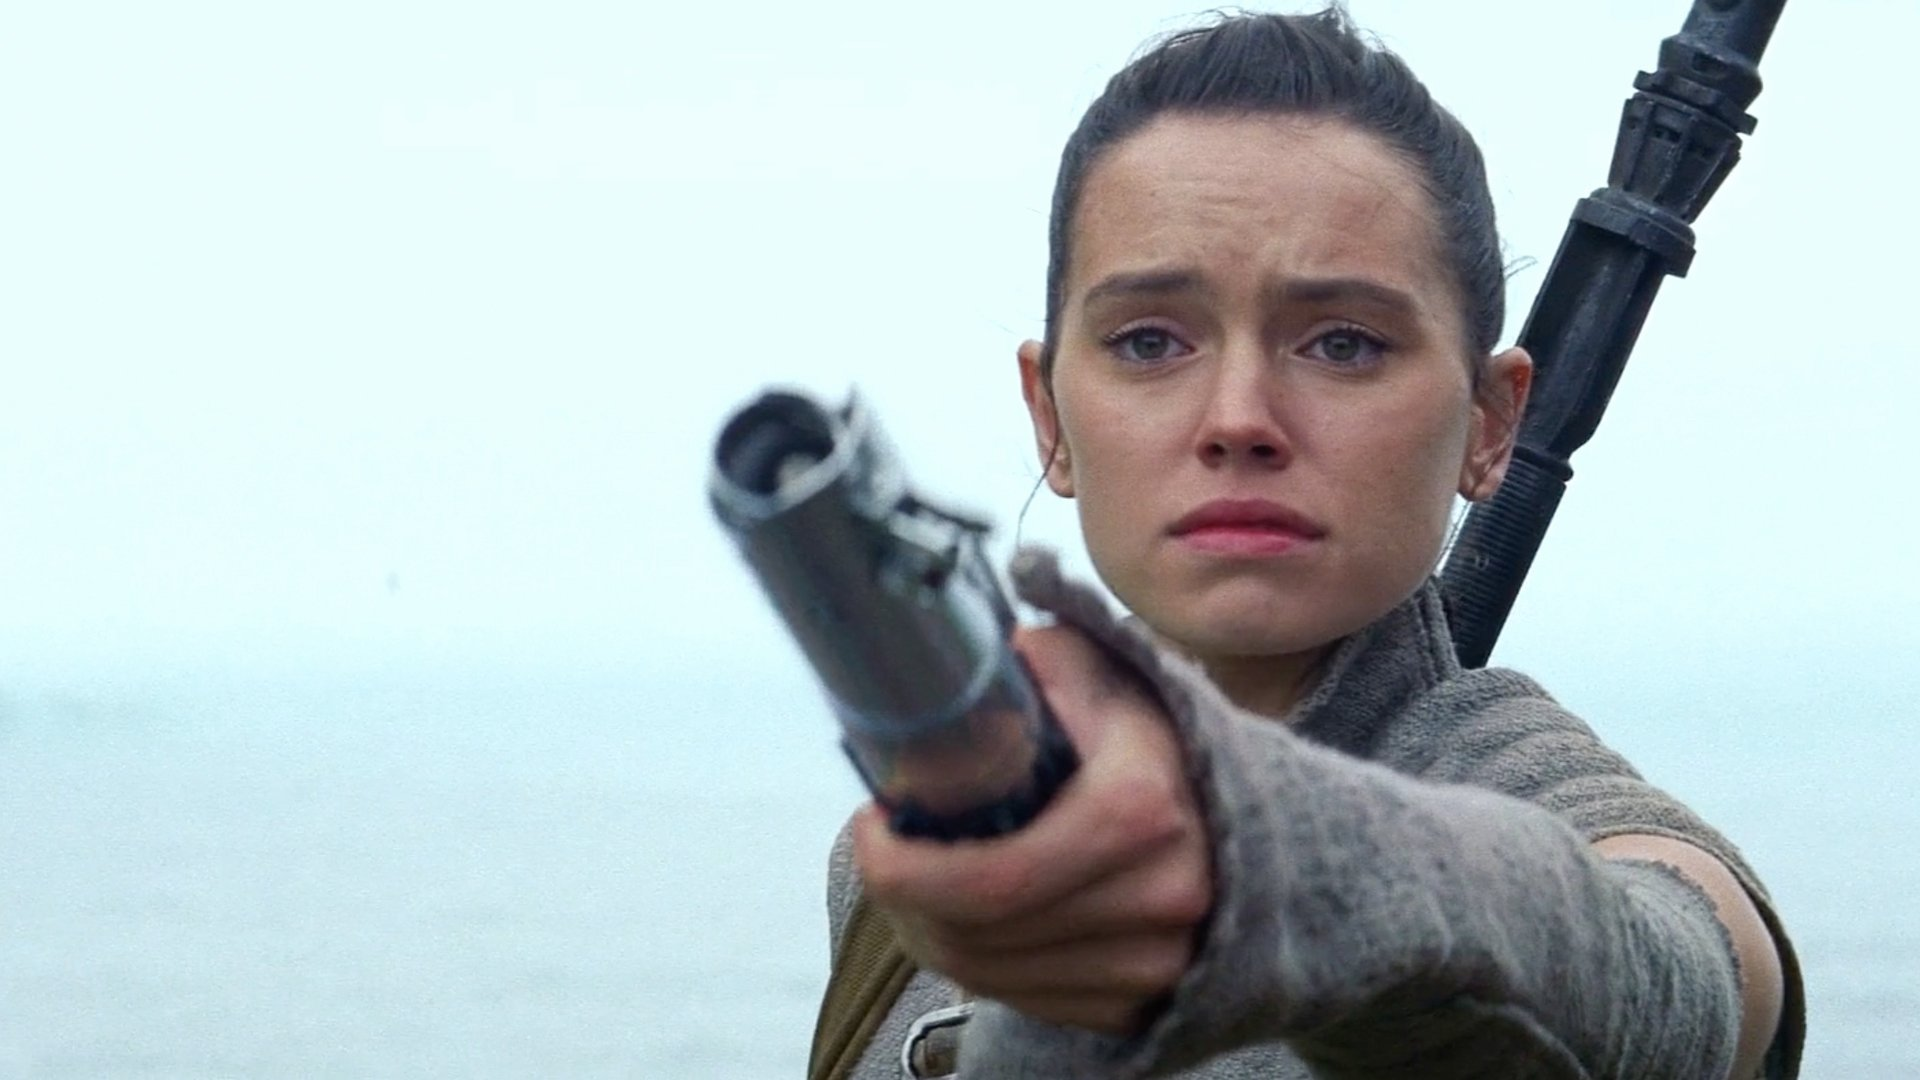 Rey holds out lightsaber Star Wars The Force Awakens Lucasfilm